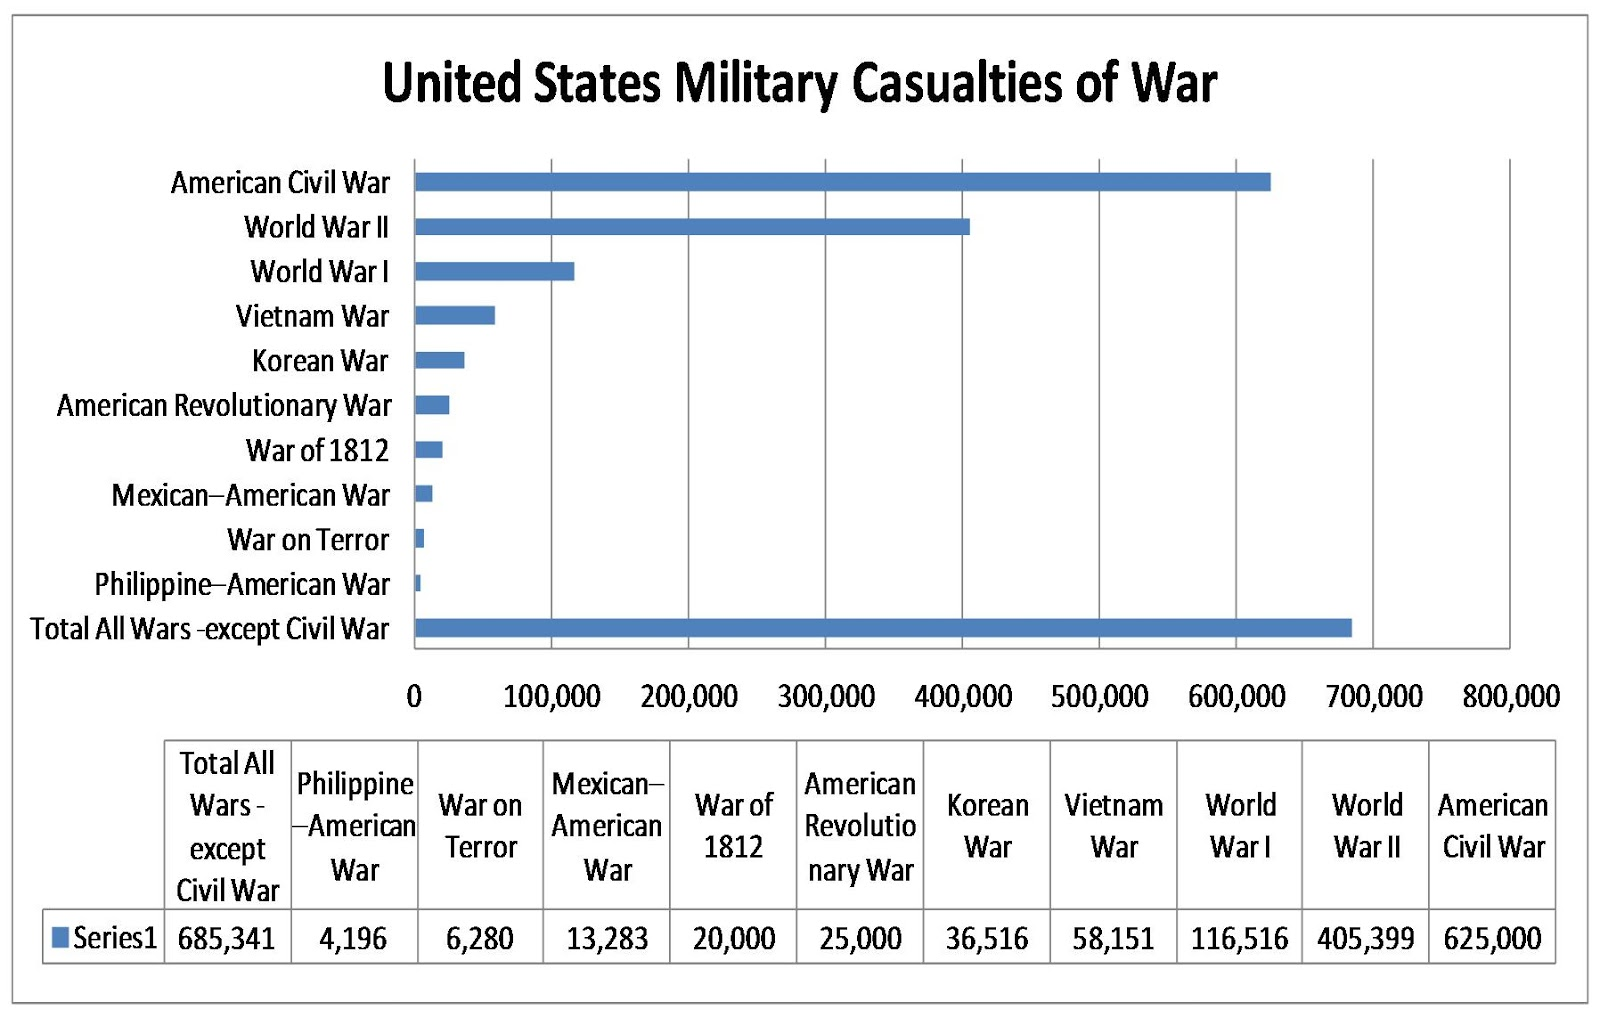 world war i casualties by state gallery